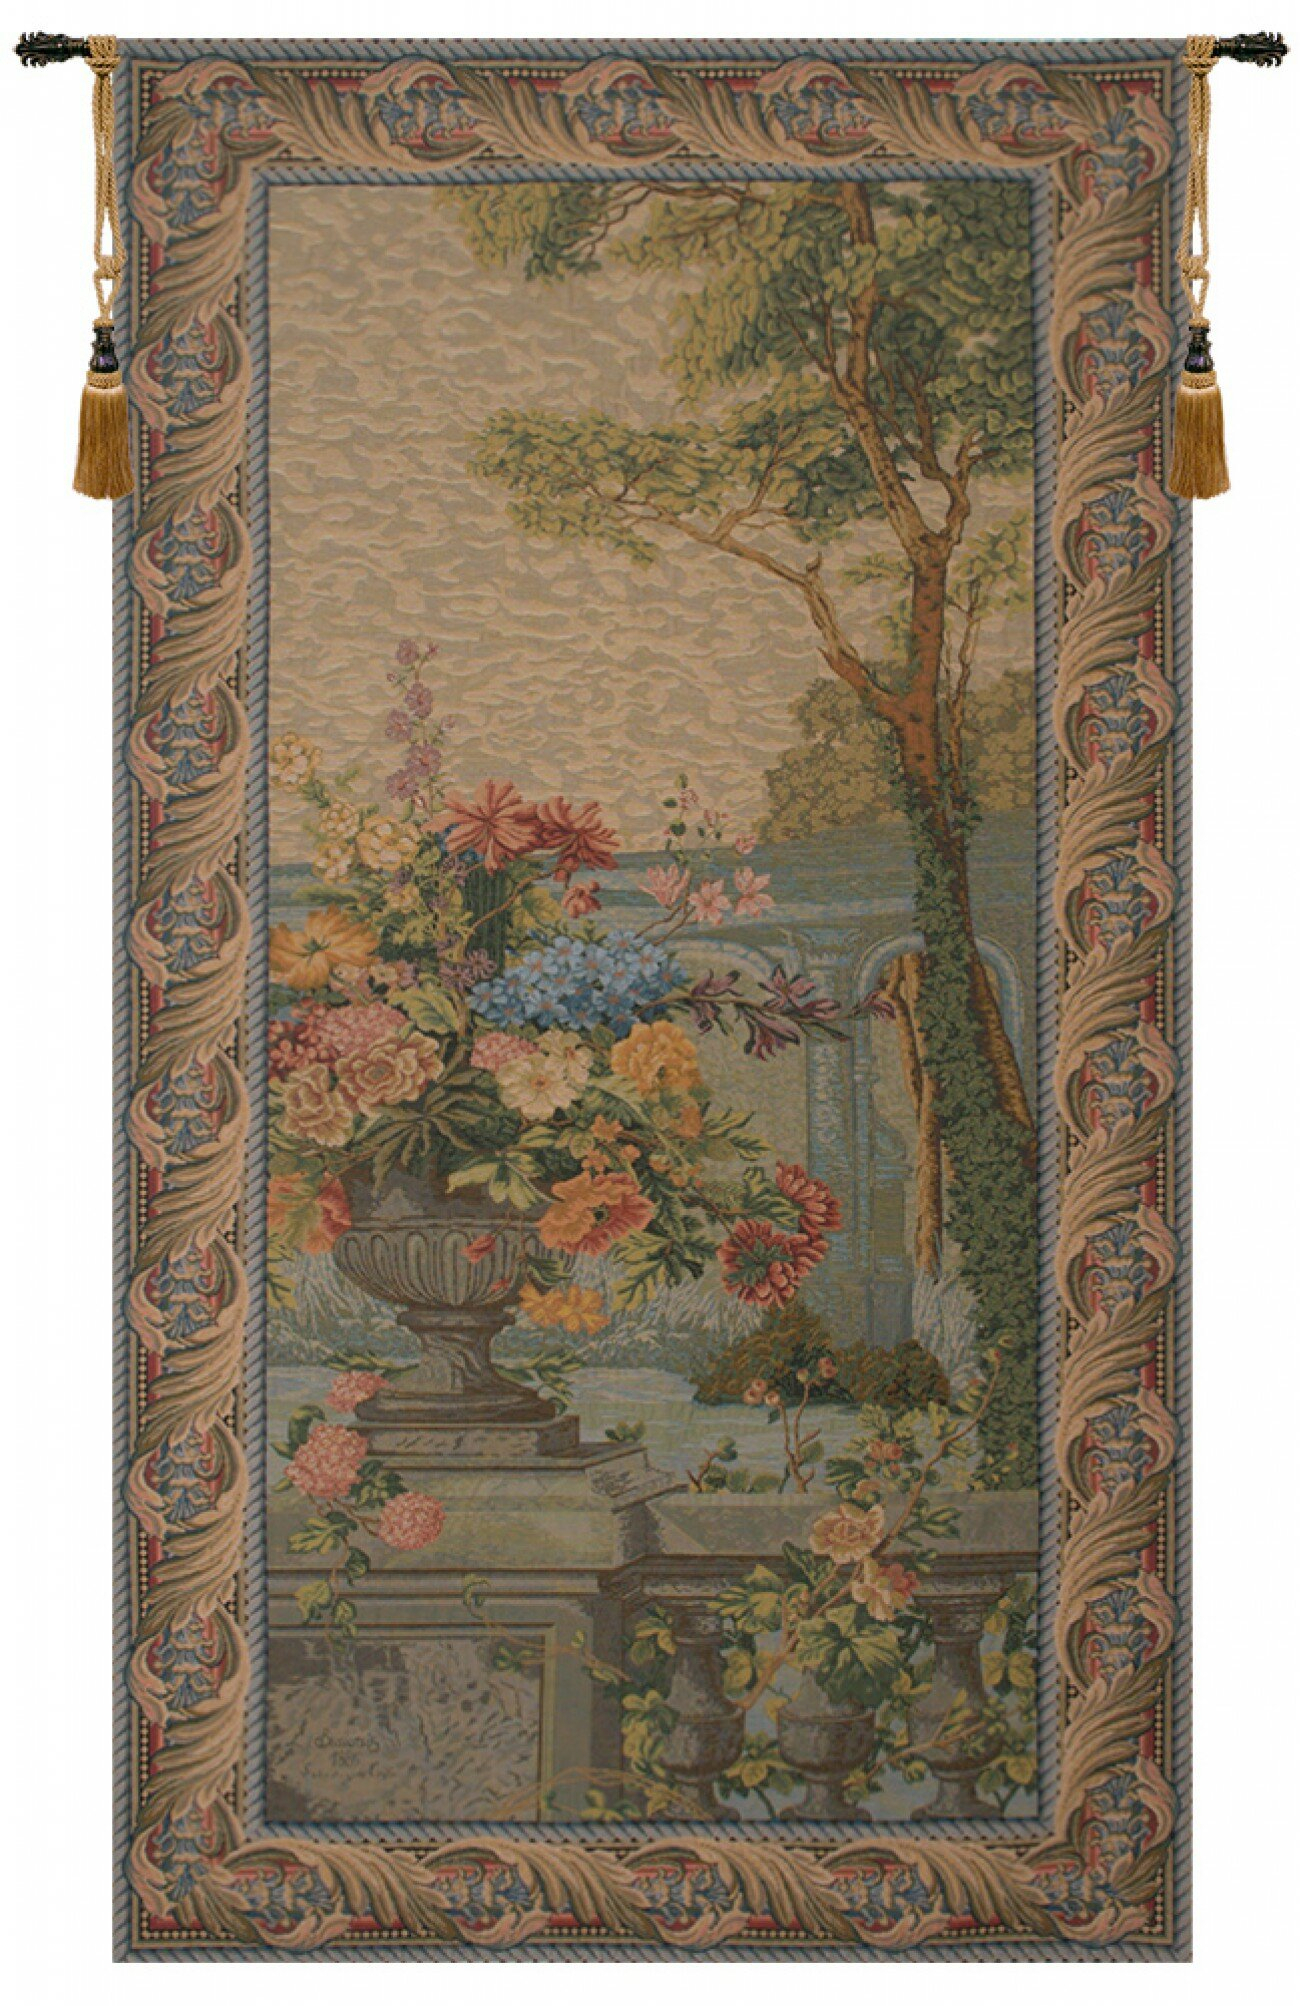 Veranda View European Wall Hanging For Latest Blended Fabric Van Gogh Terrace Wall Hangings (View 7 of 20)